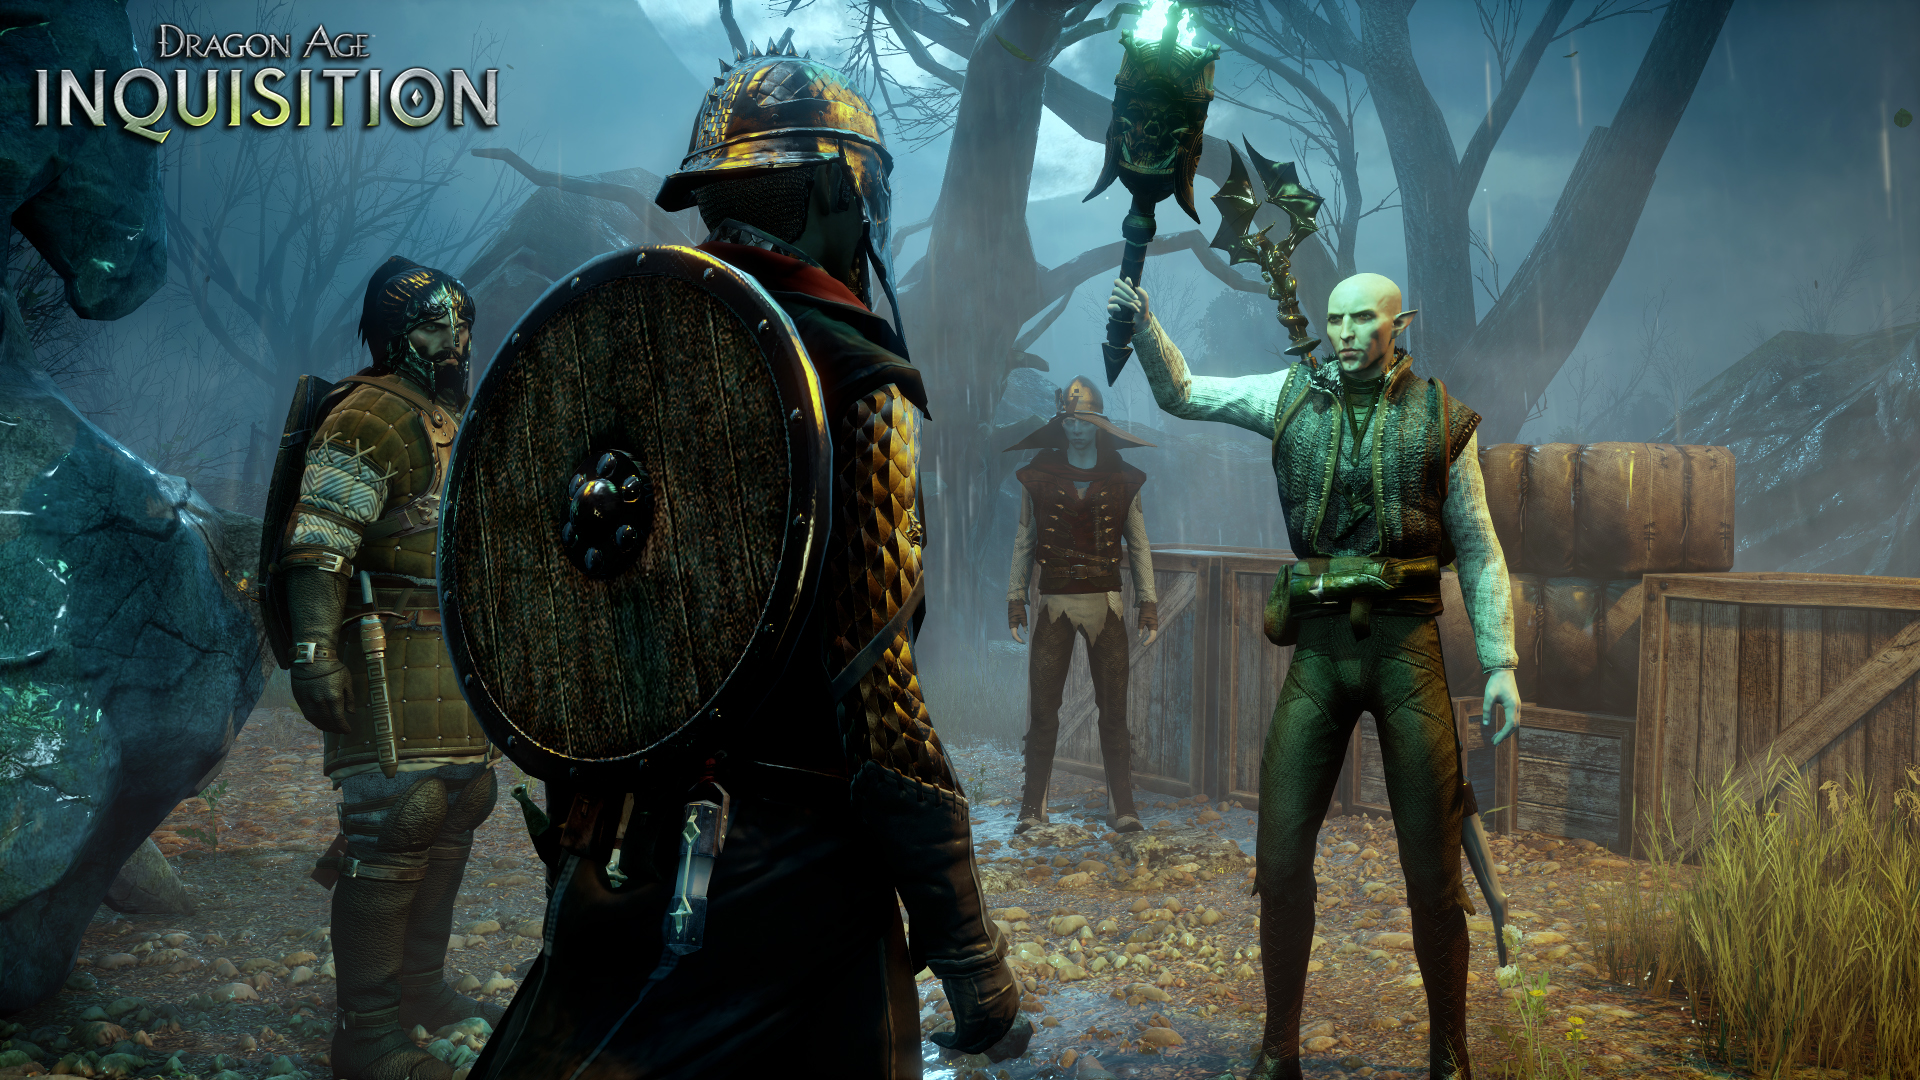 Dragon Age Bioware Video Games Rpg Fantasy Art: Dragon Age: Inquisition BioWare RPG Preview